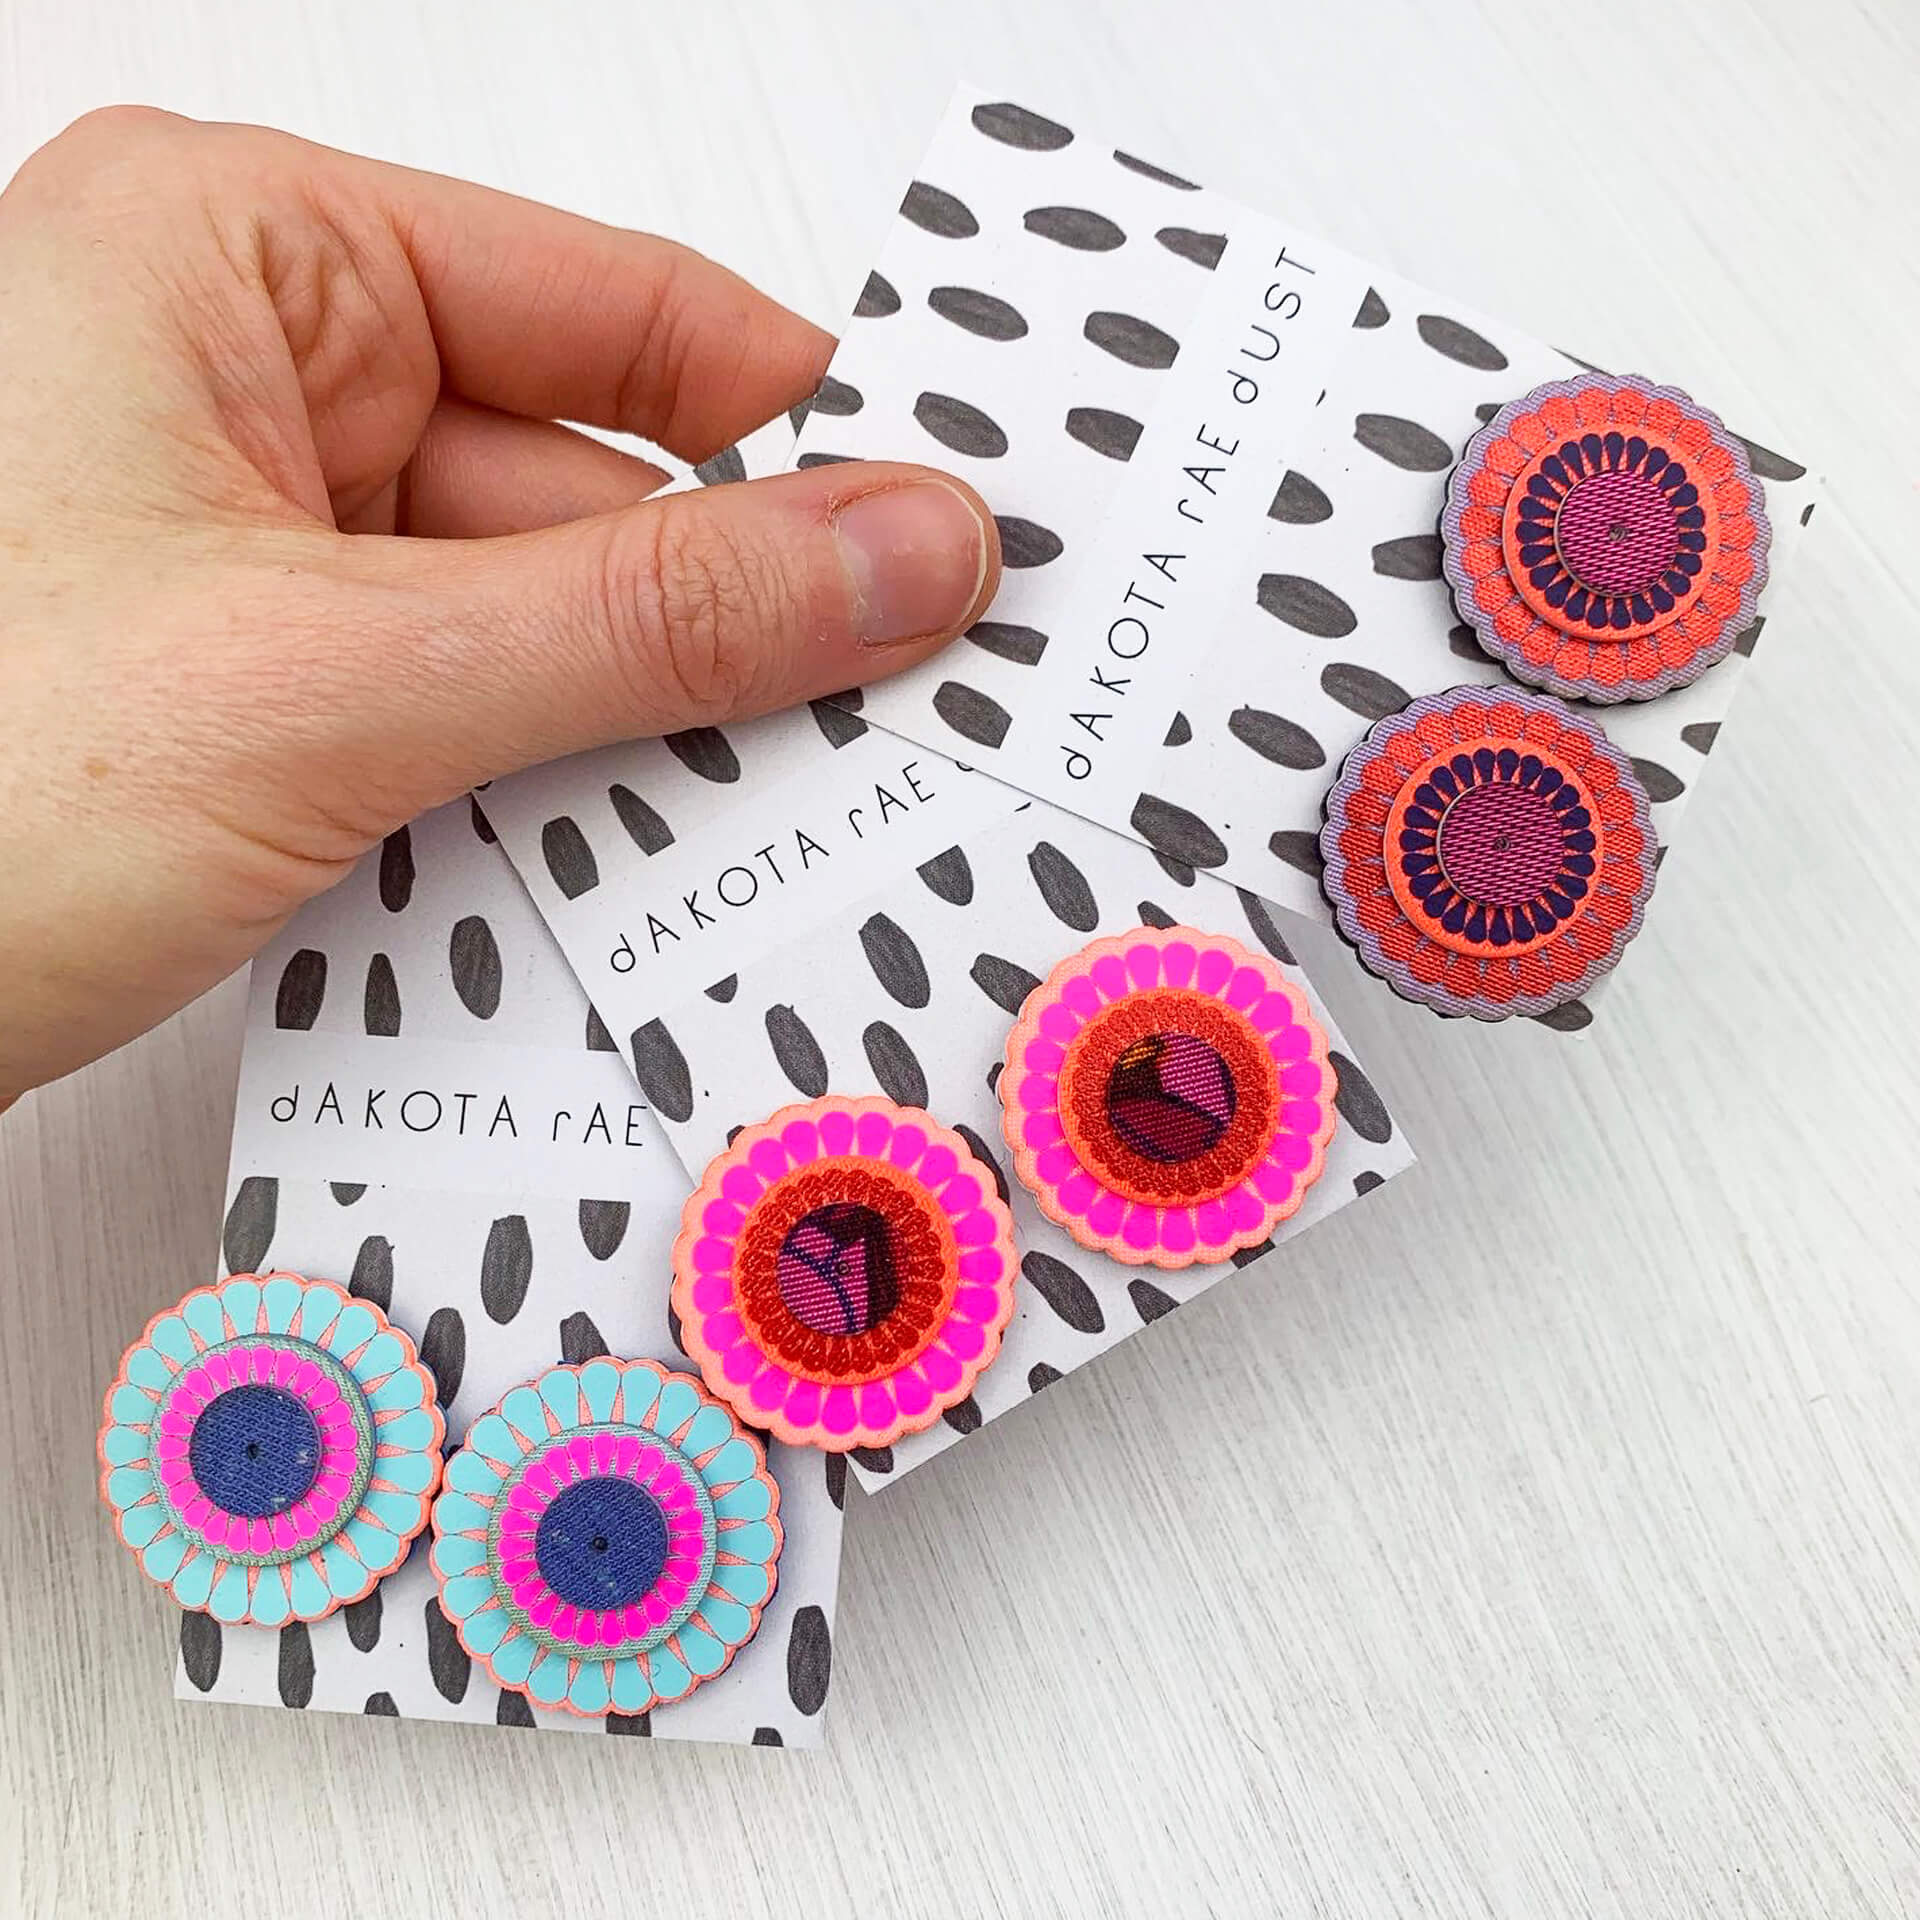 Three pairs of oversize stud earrings held in a woman's hand against a white background. Each colourful, circular pairs of studs is displayed on a black and white patterned backing card, branded with the dakota rae dust logo.